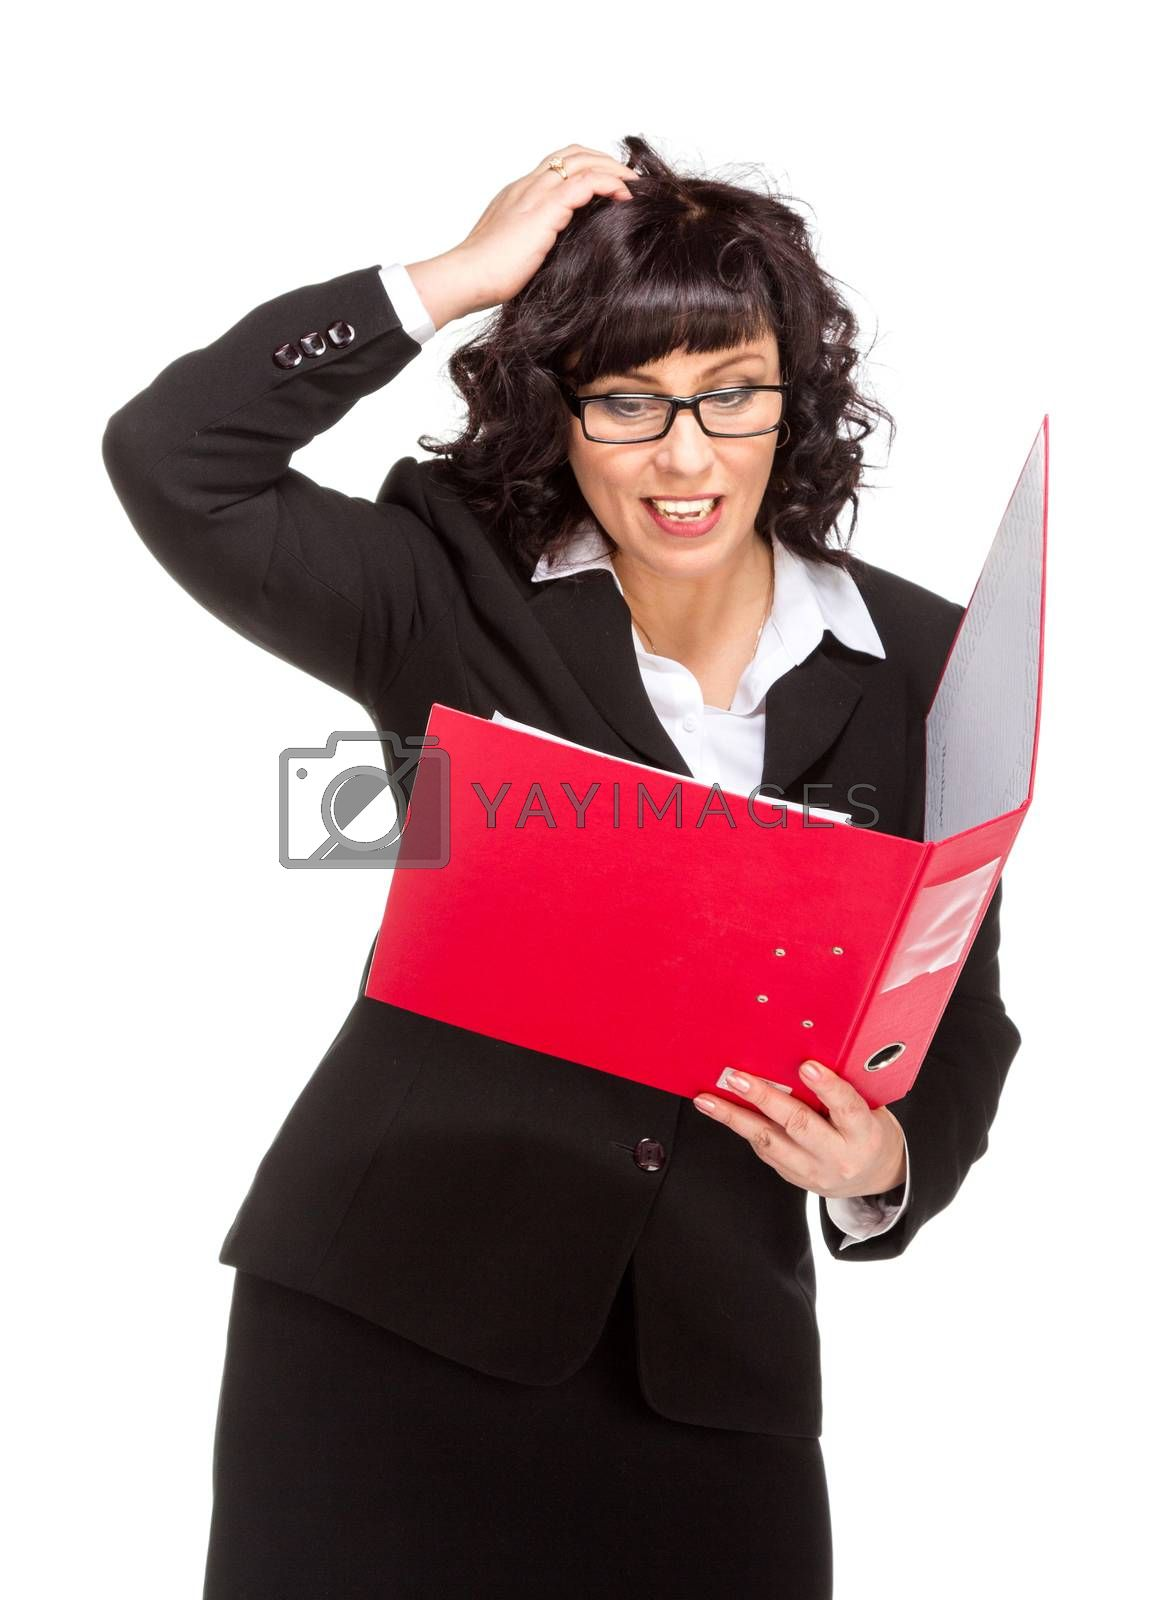 Royalty free image of surprised senior business woman with folder by gsdonlin